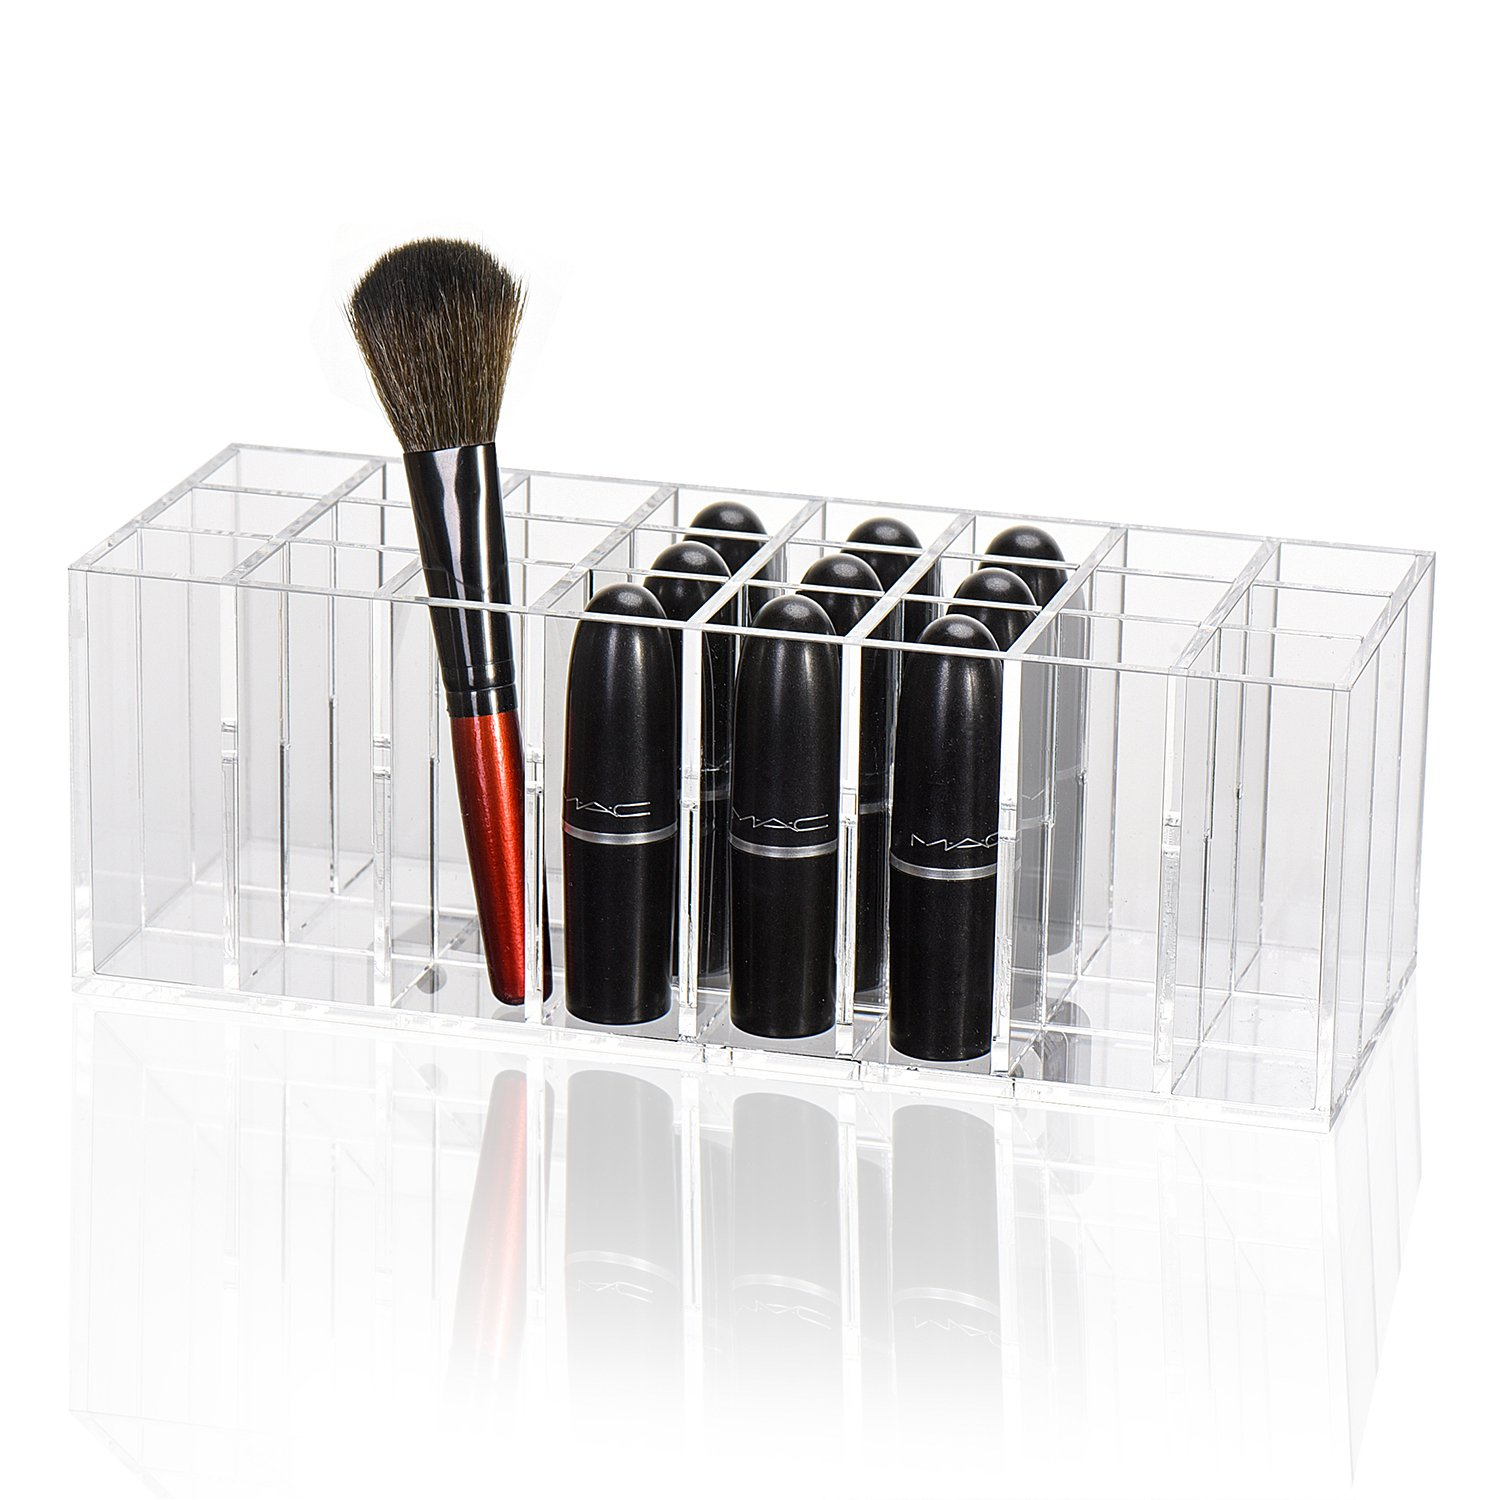 TWING Acrylic Lipstick Organizer Lip Gloss Holder Organizer, 24 Spaces Clear Acrylic Makeup Lipgloss Display Case